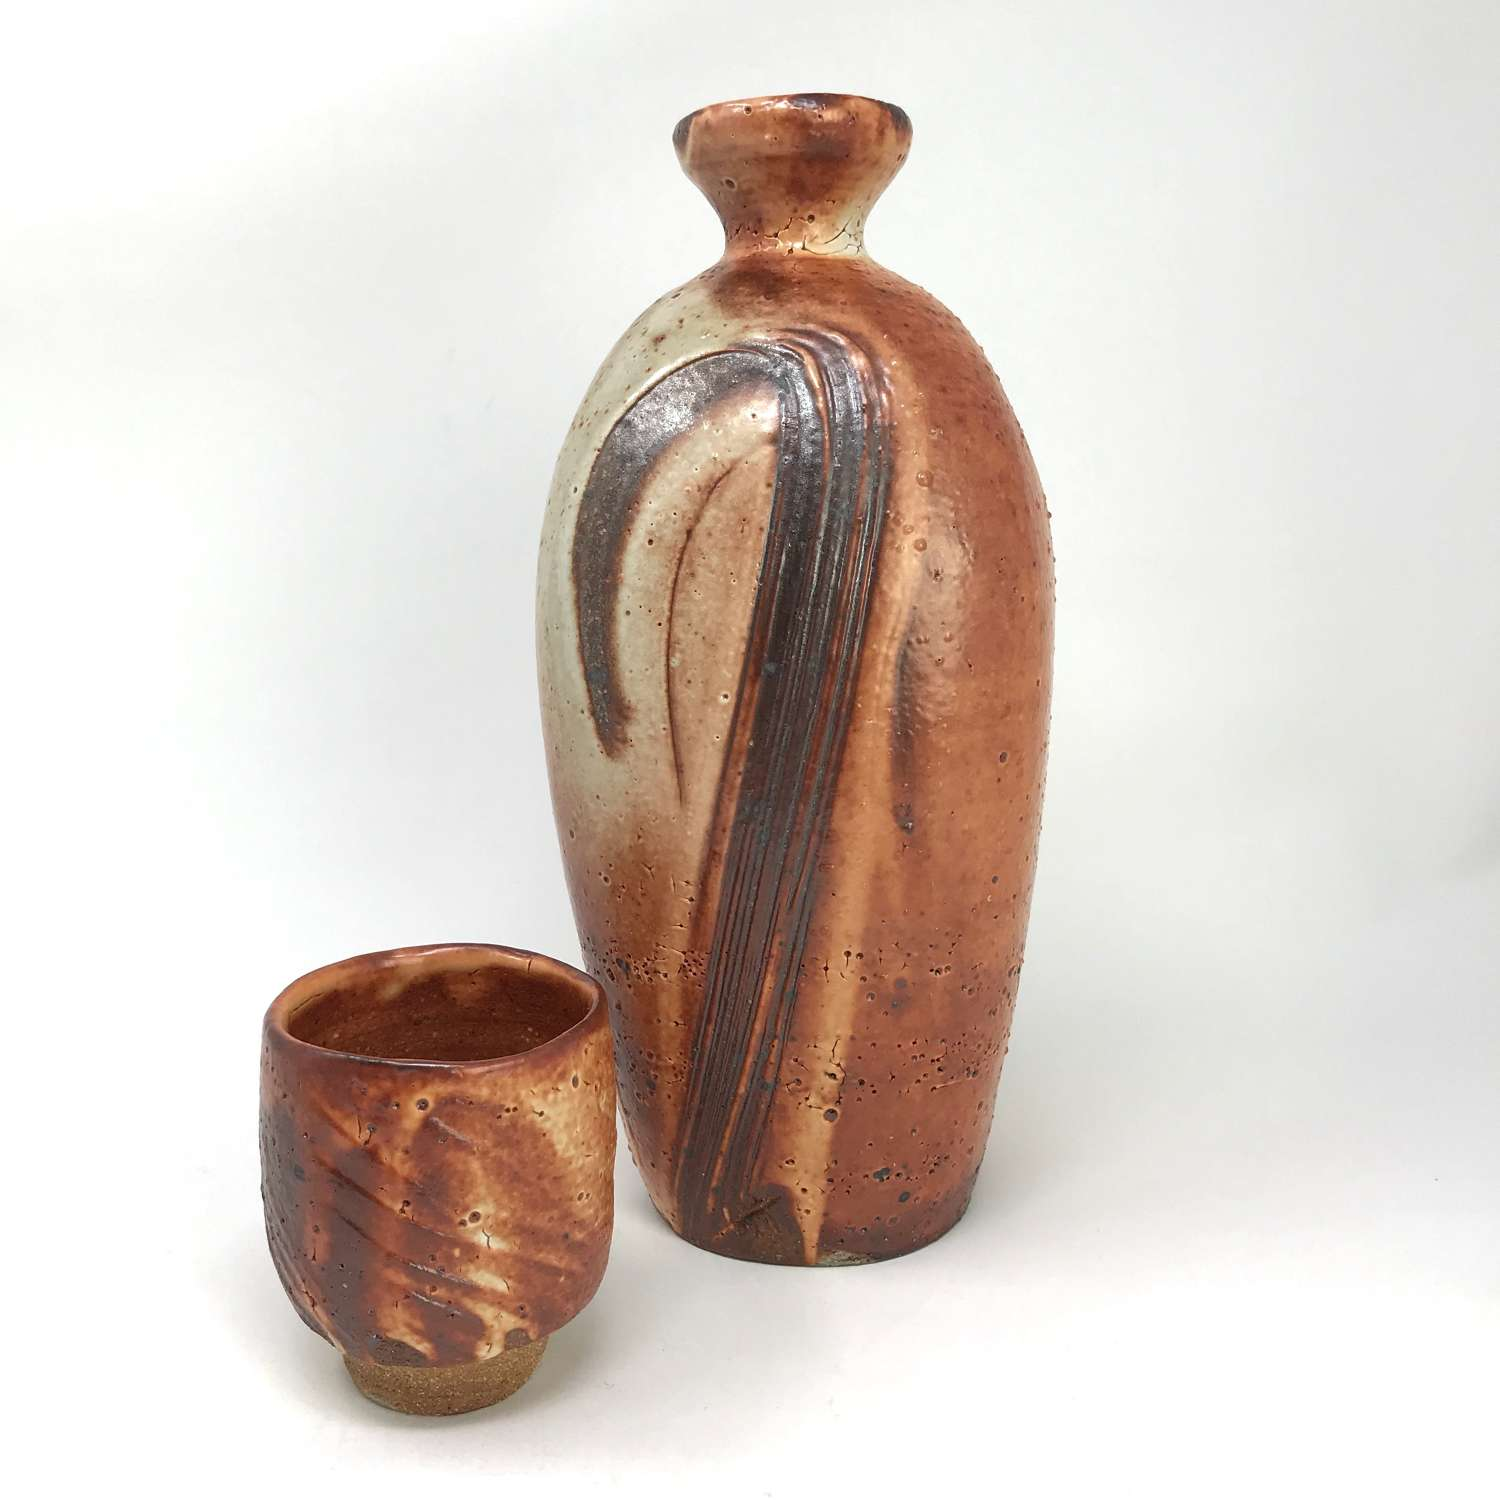 Lisa Hammond Stoneware Bottle and Matching Sake Cup